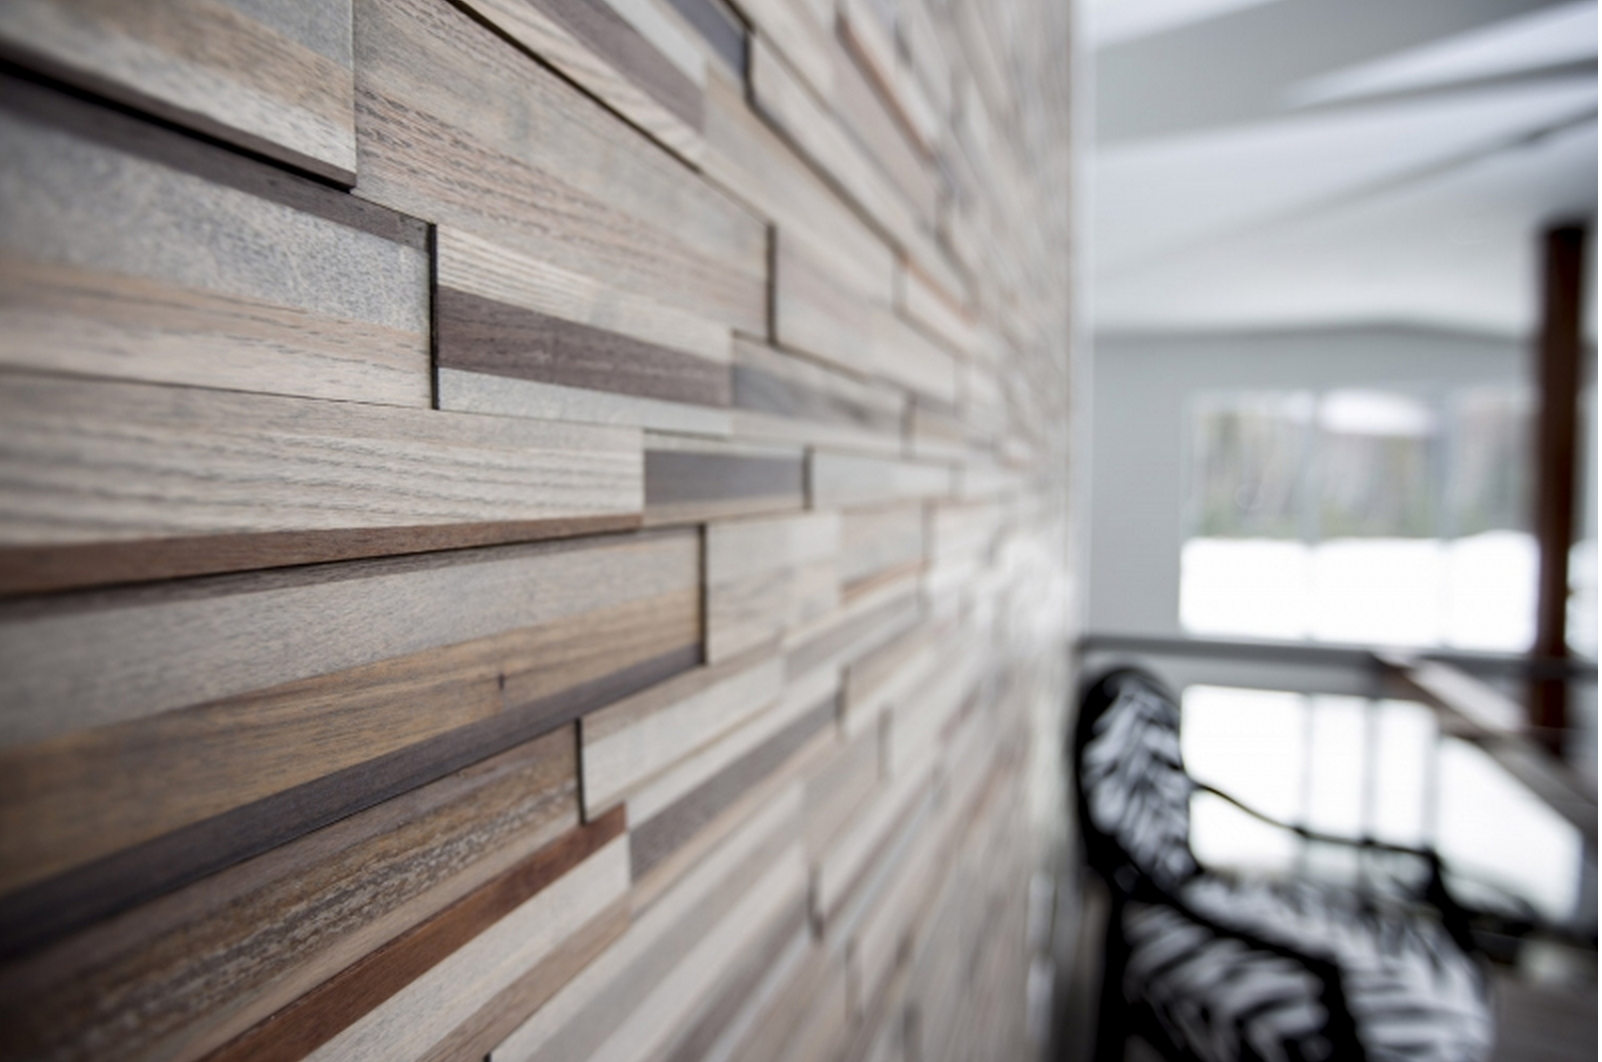 Bedroom Artistic Accent Walls That Use Slats To Look